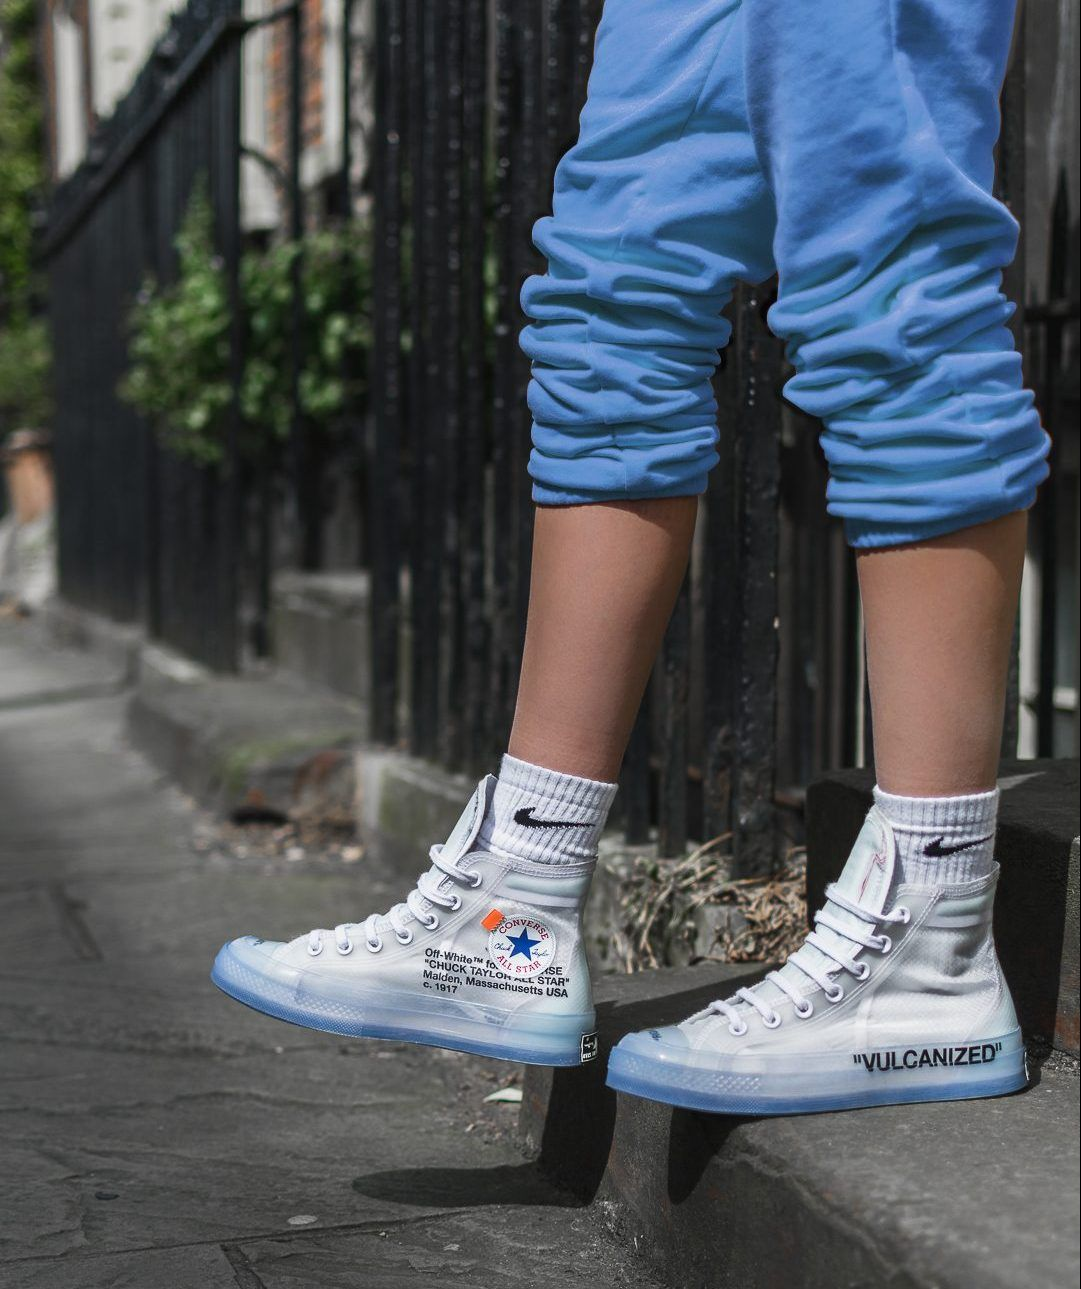 51f28287275 A Closer Look at the Off-White x Converse Chuck 70